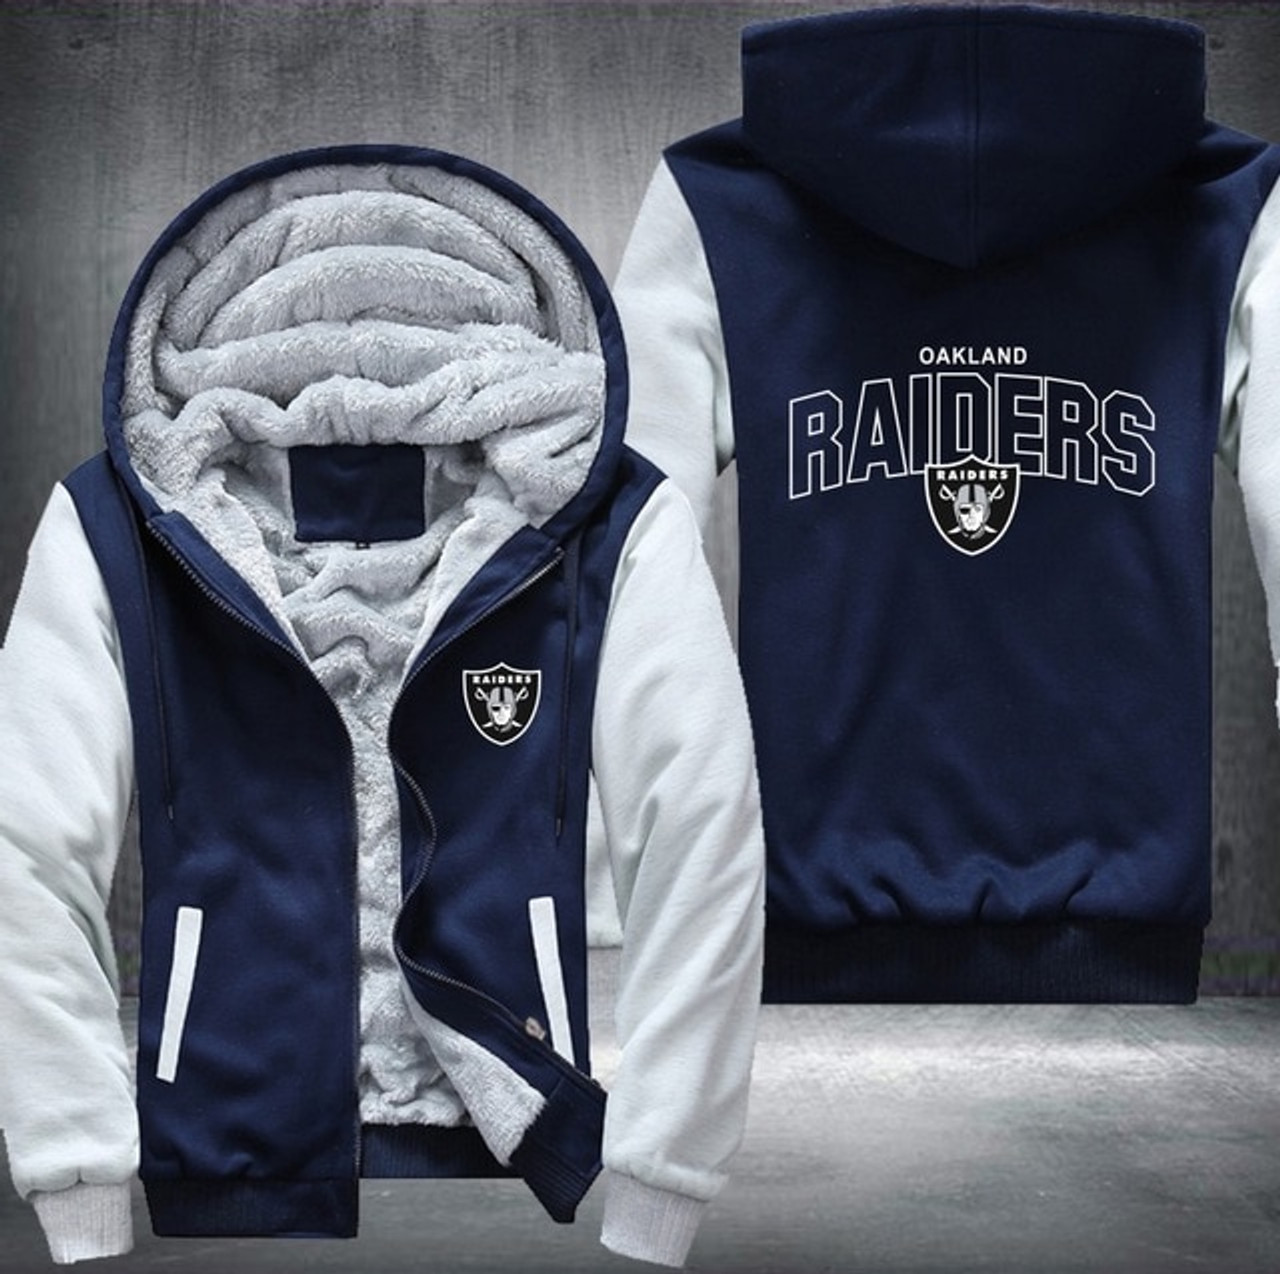 finest selection d33c2 f95e2 **(NEW-OFFICIALLY-LICENSED-N.F.L.  OAKLAND-RAIDERS/TRENDY-NEW-TWO-TONE-STYLE,SOFT-FLEECE-LINED-TEAM-JACKETS/3-D-CUSTOM-DETAILED-GRAPHIC-PRINTED-DOUBLE-...